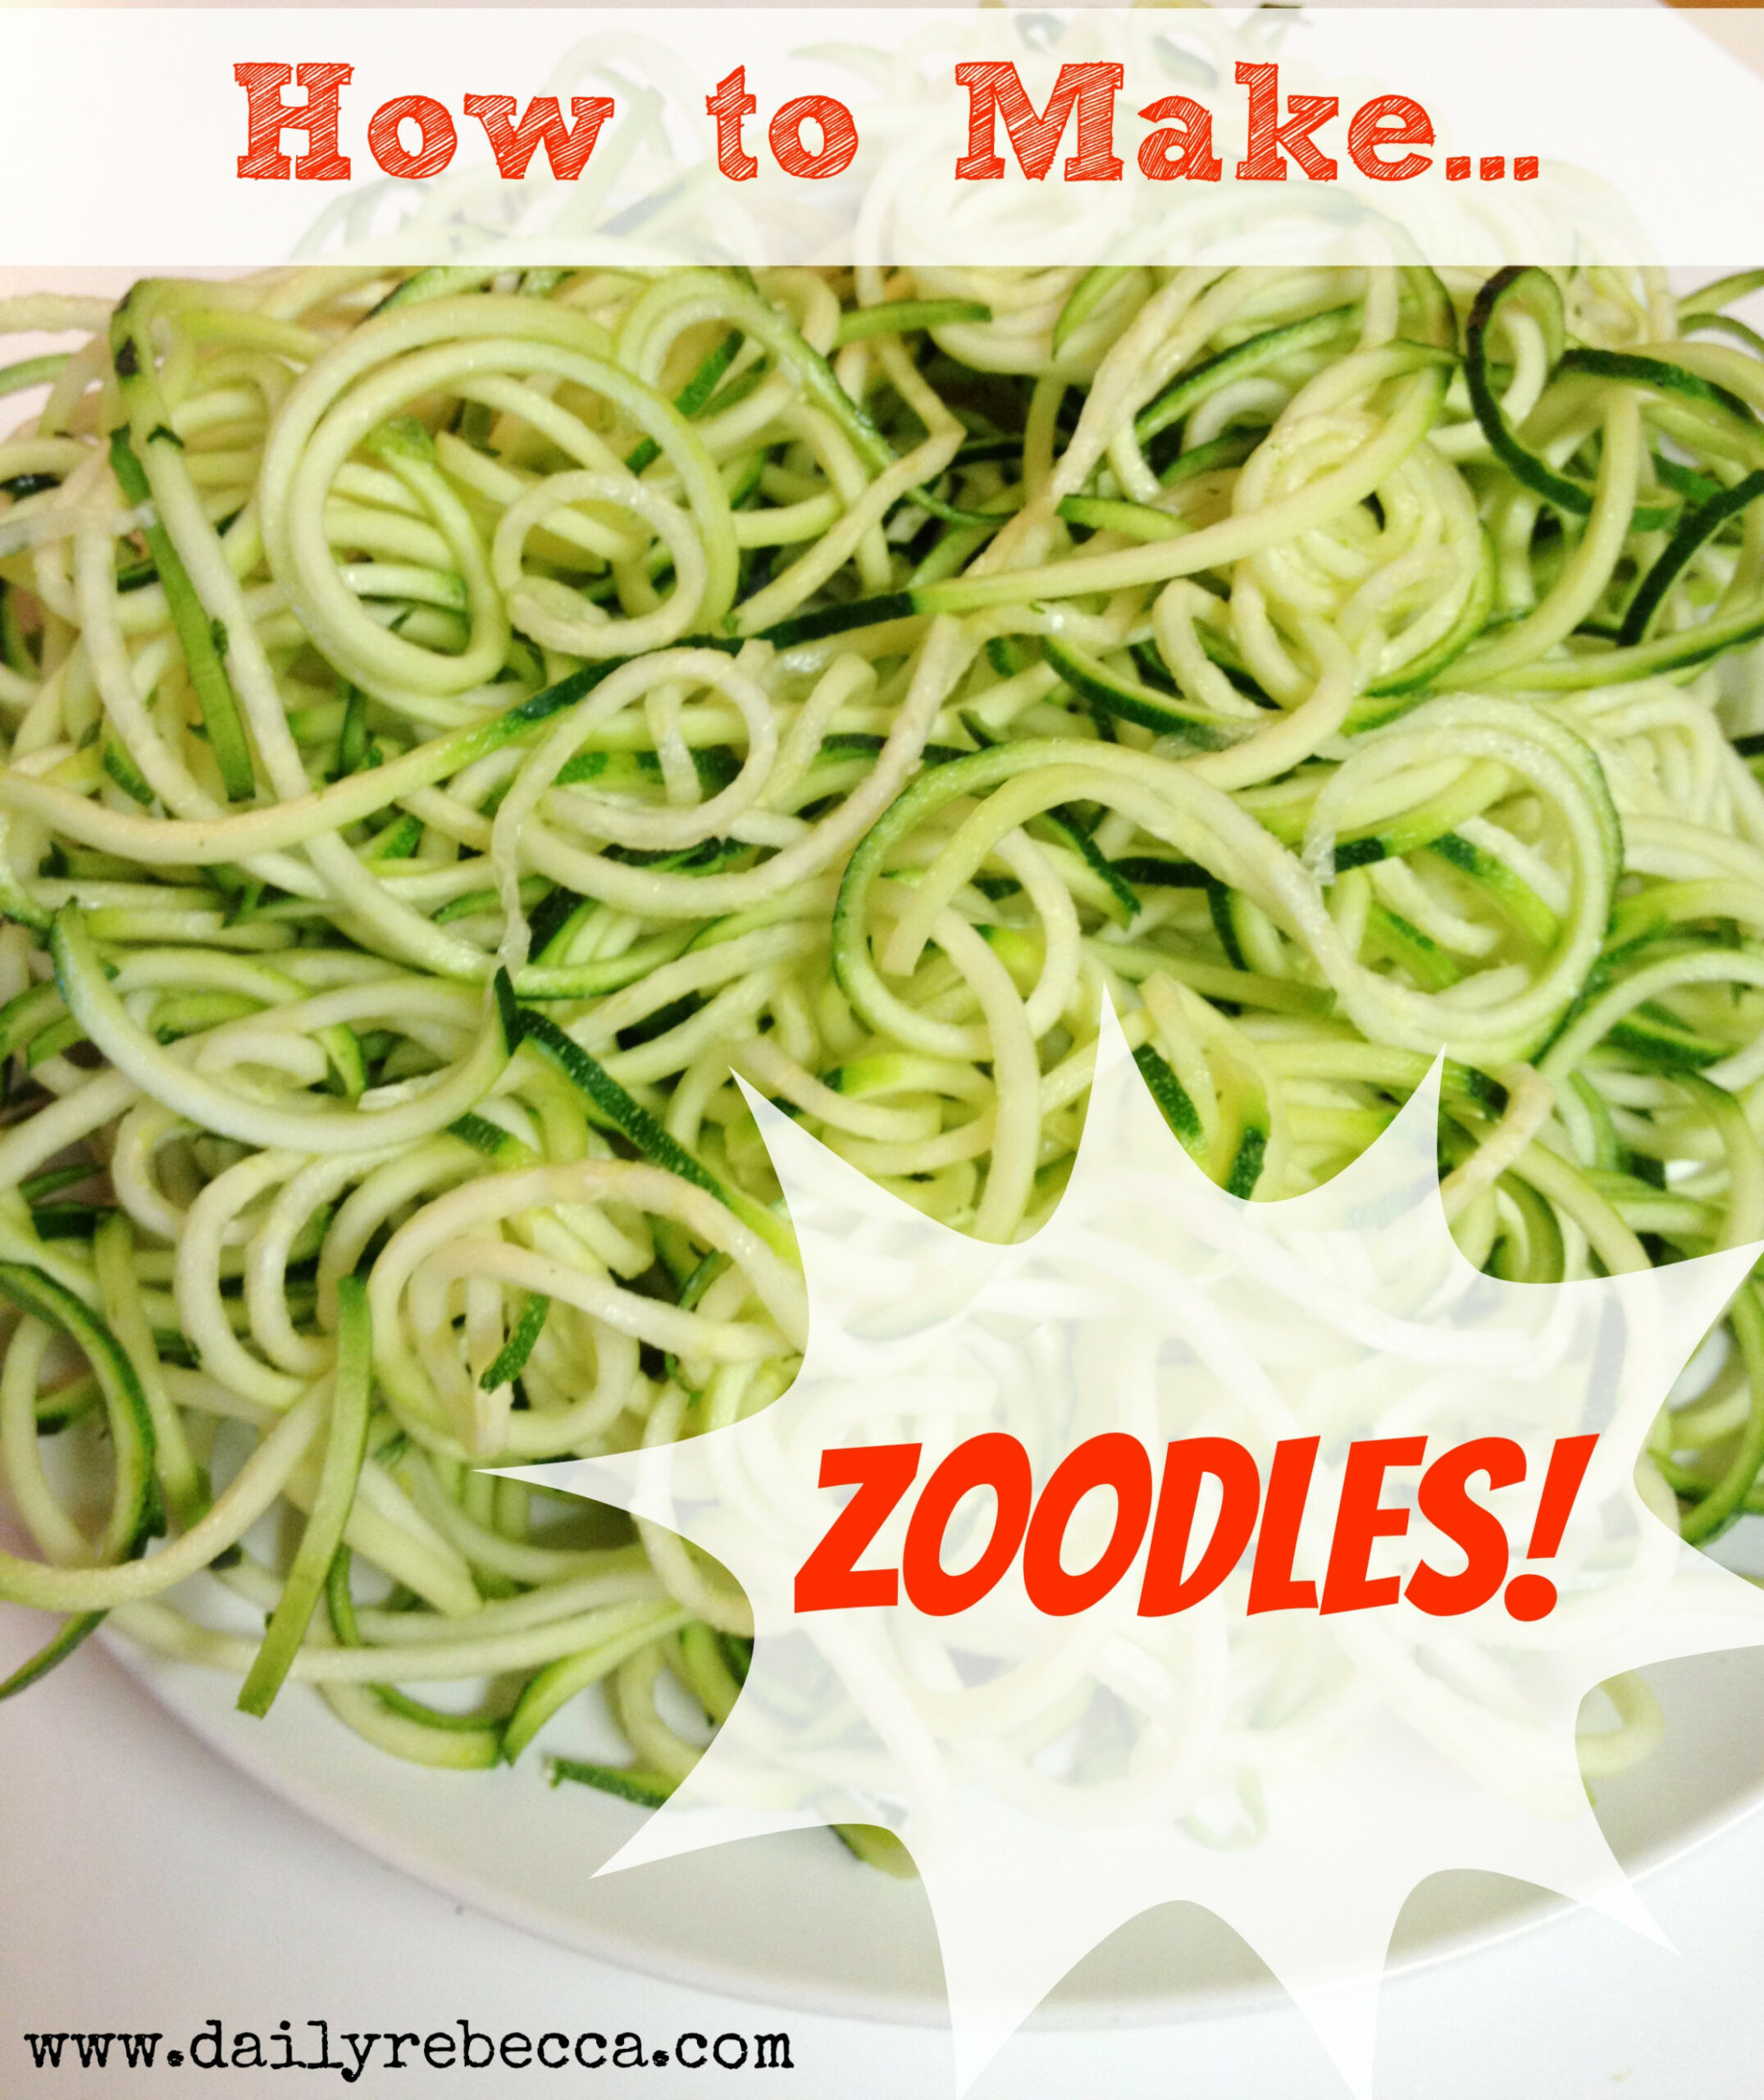 How To Make Zoodles (and A Video!) - Daily Rebecca - Vegetarian Recipes Zoodles